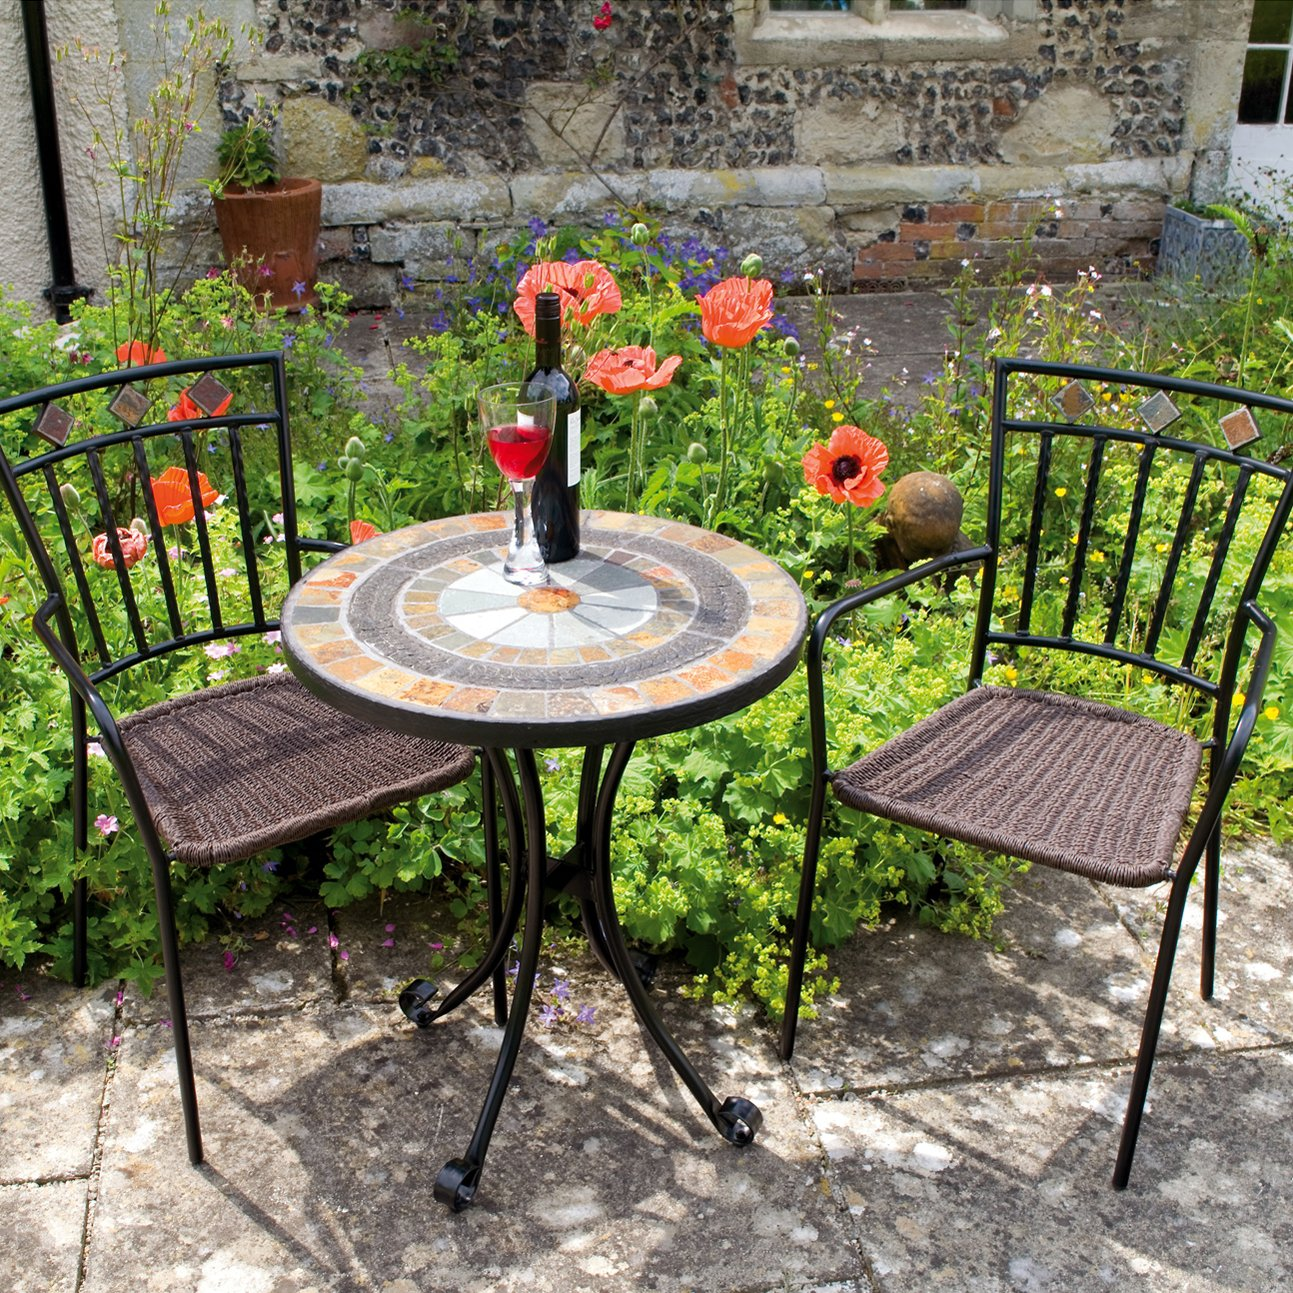 Europa Leisure Villena Bistro Table At Barnitts Online Store Uk Barnitts